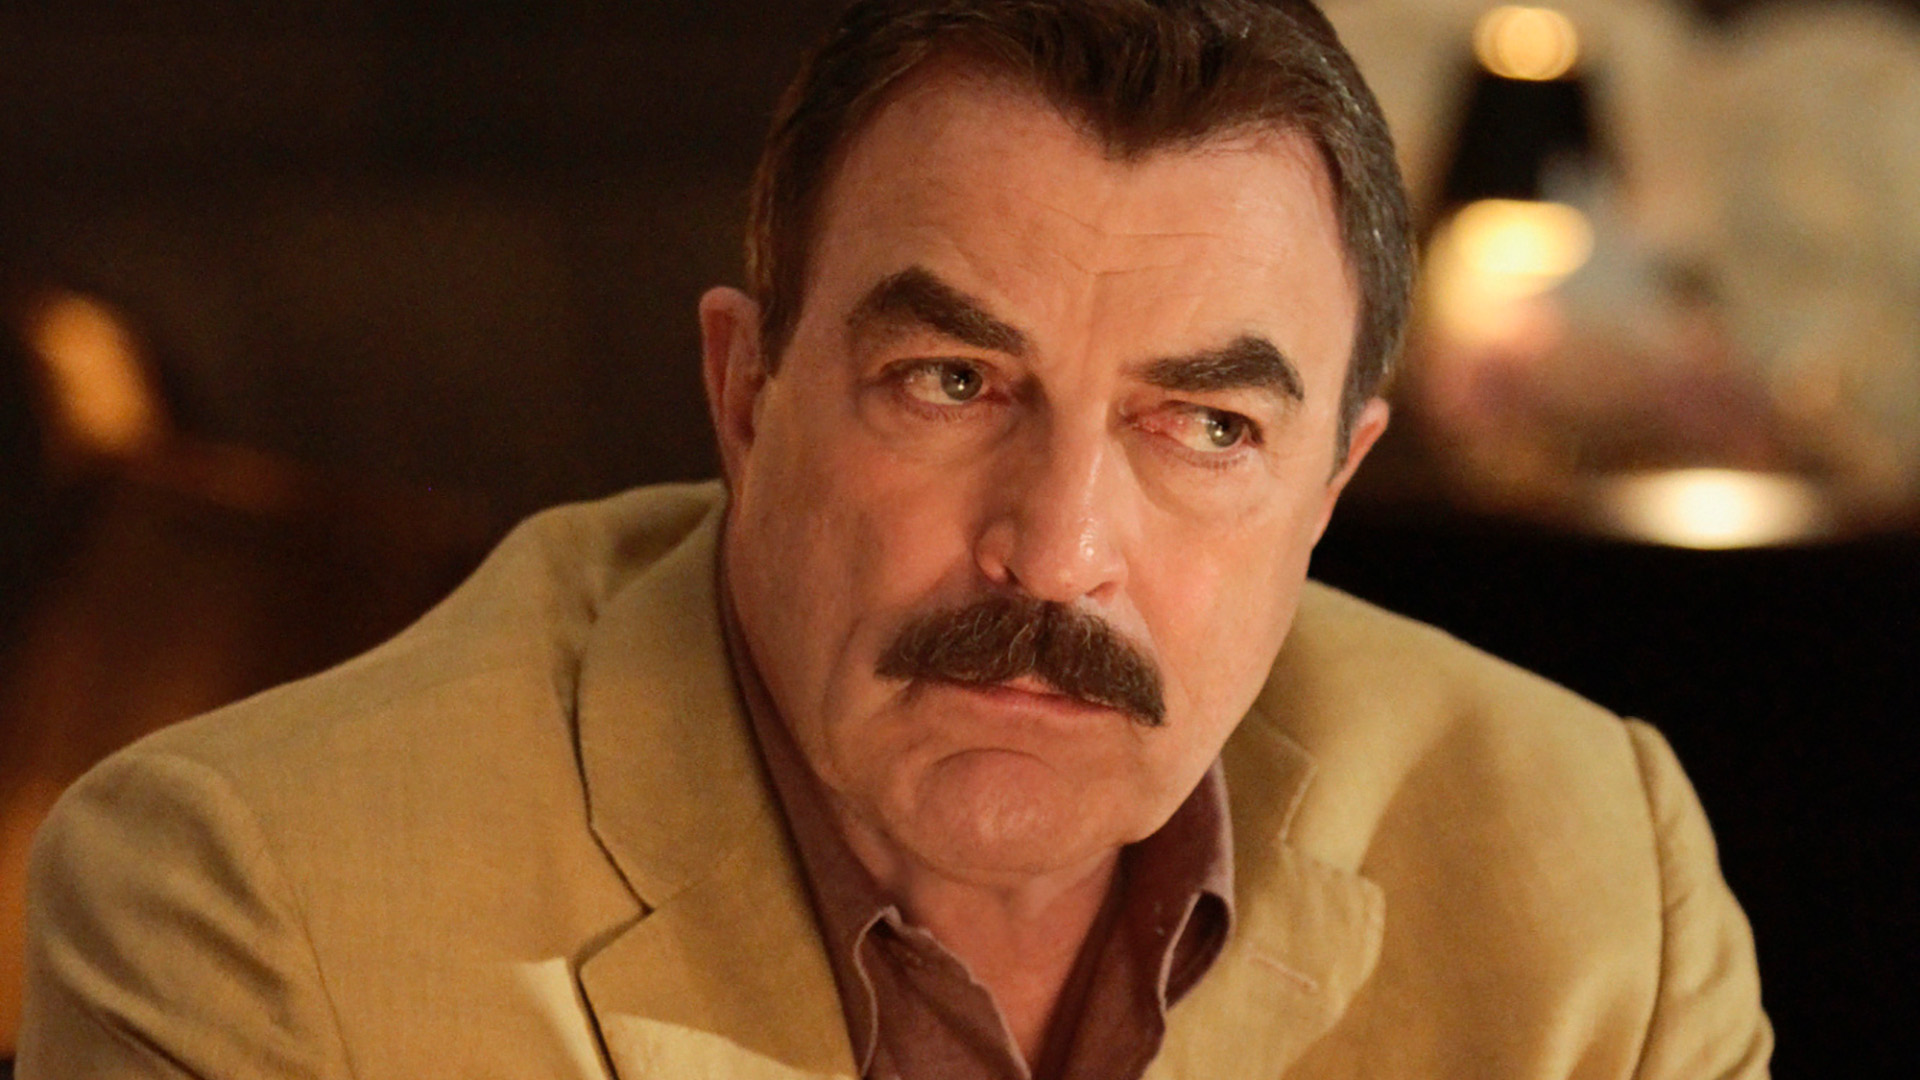 Tom Selleck from Blue Bloods